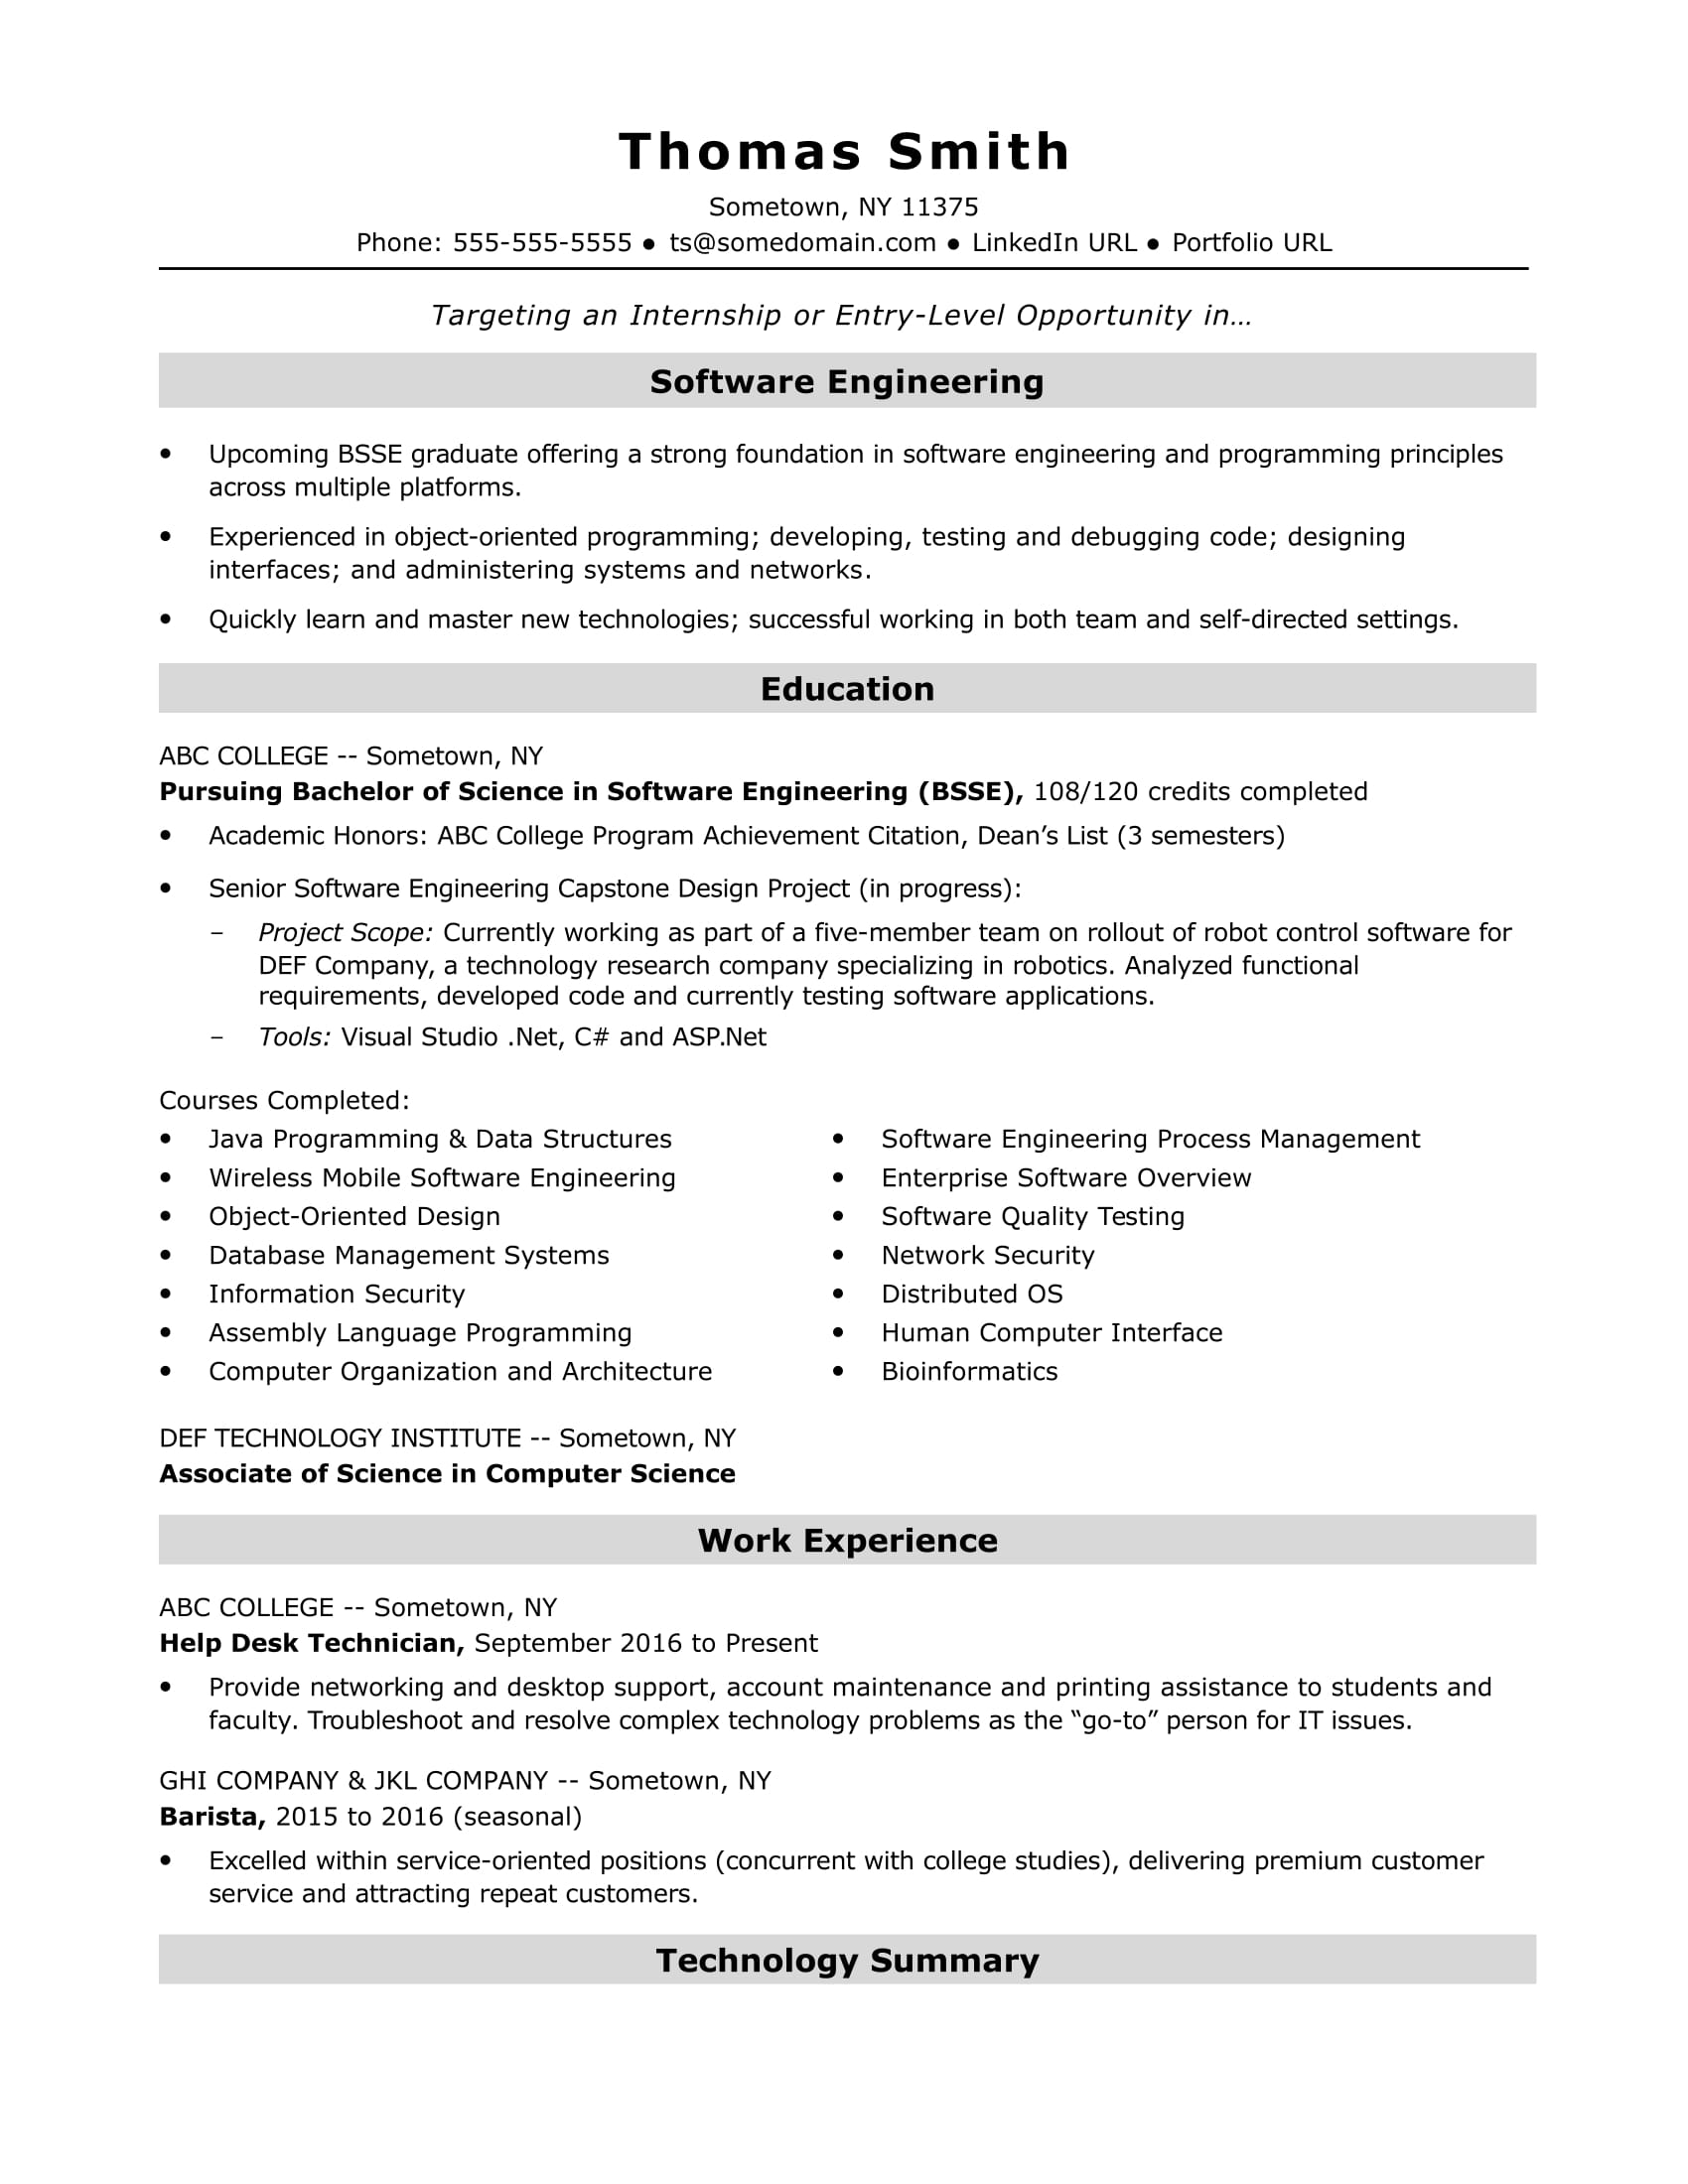 Sample Resume For An Entry Level Software Engineer  Us Resume Samples